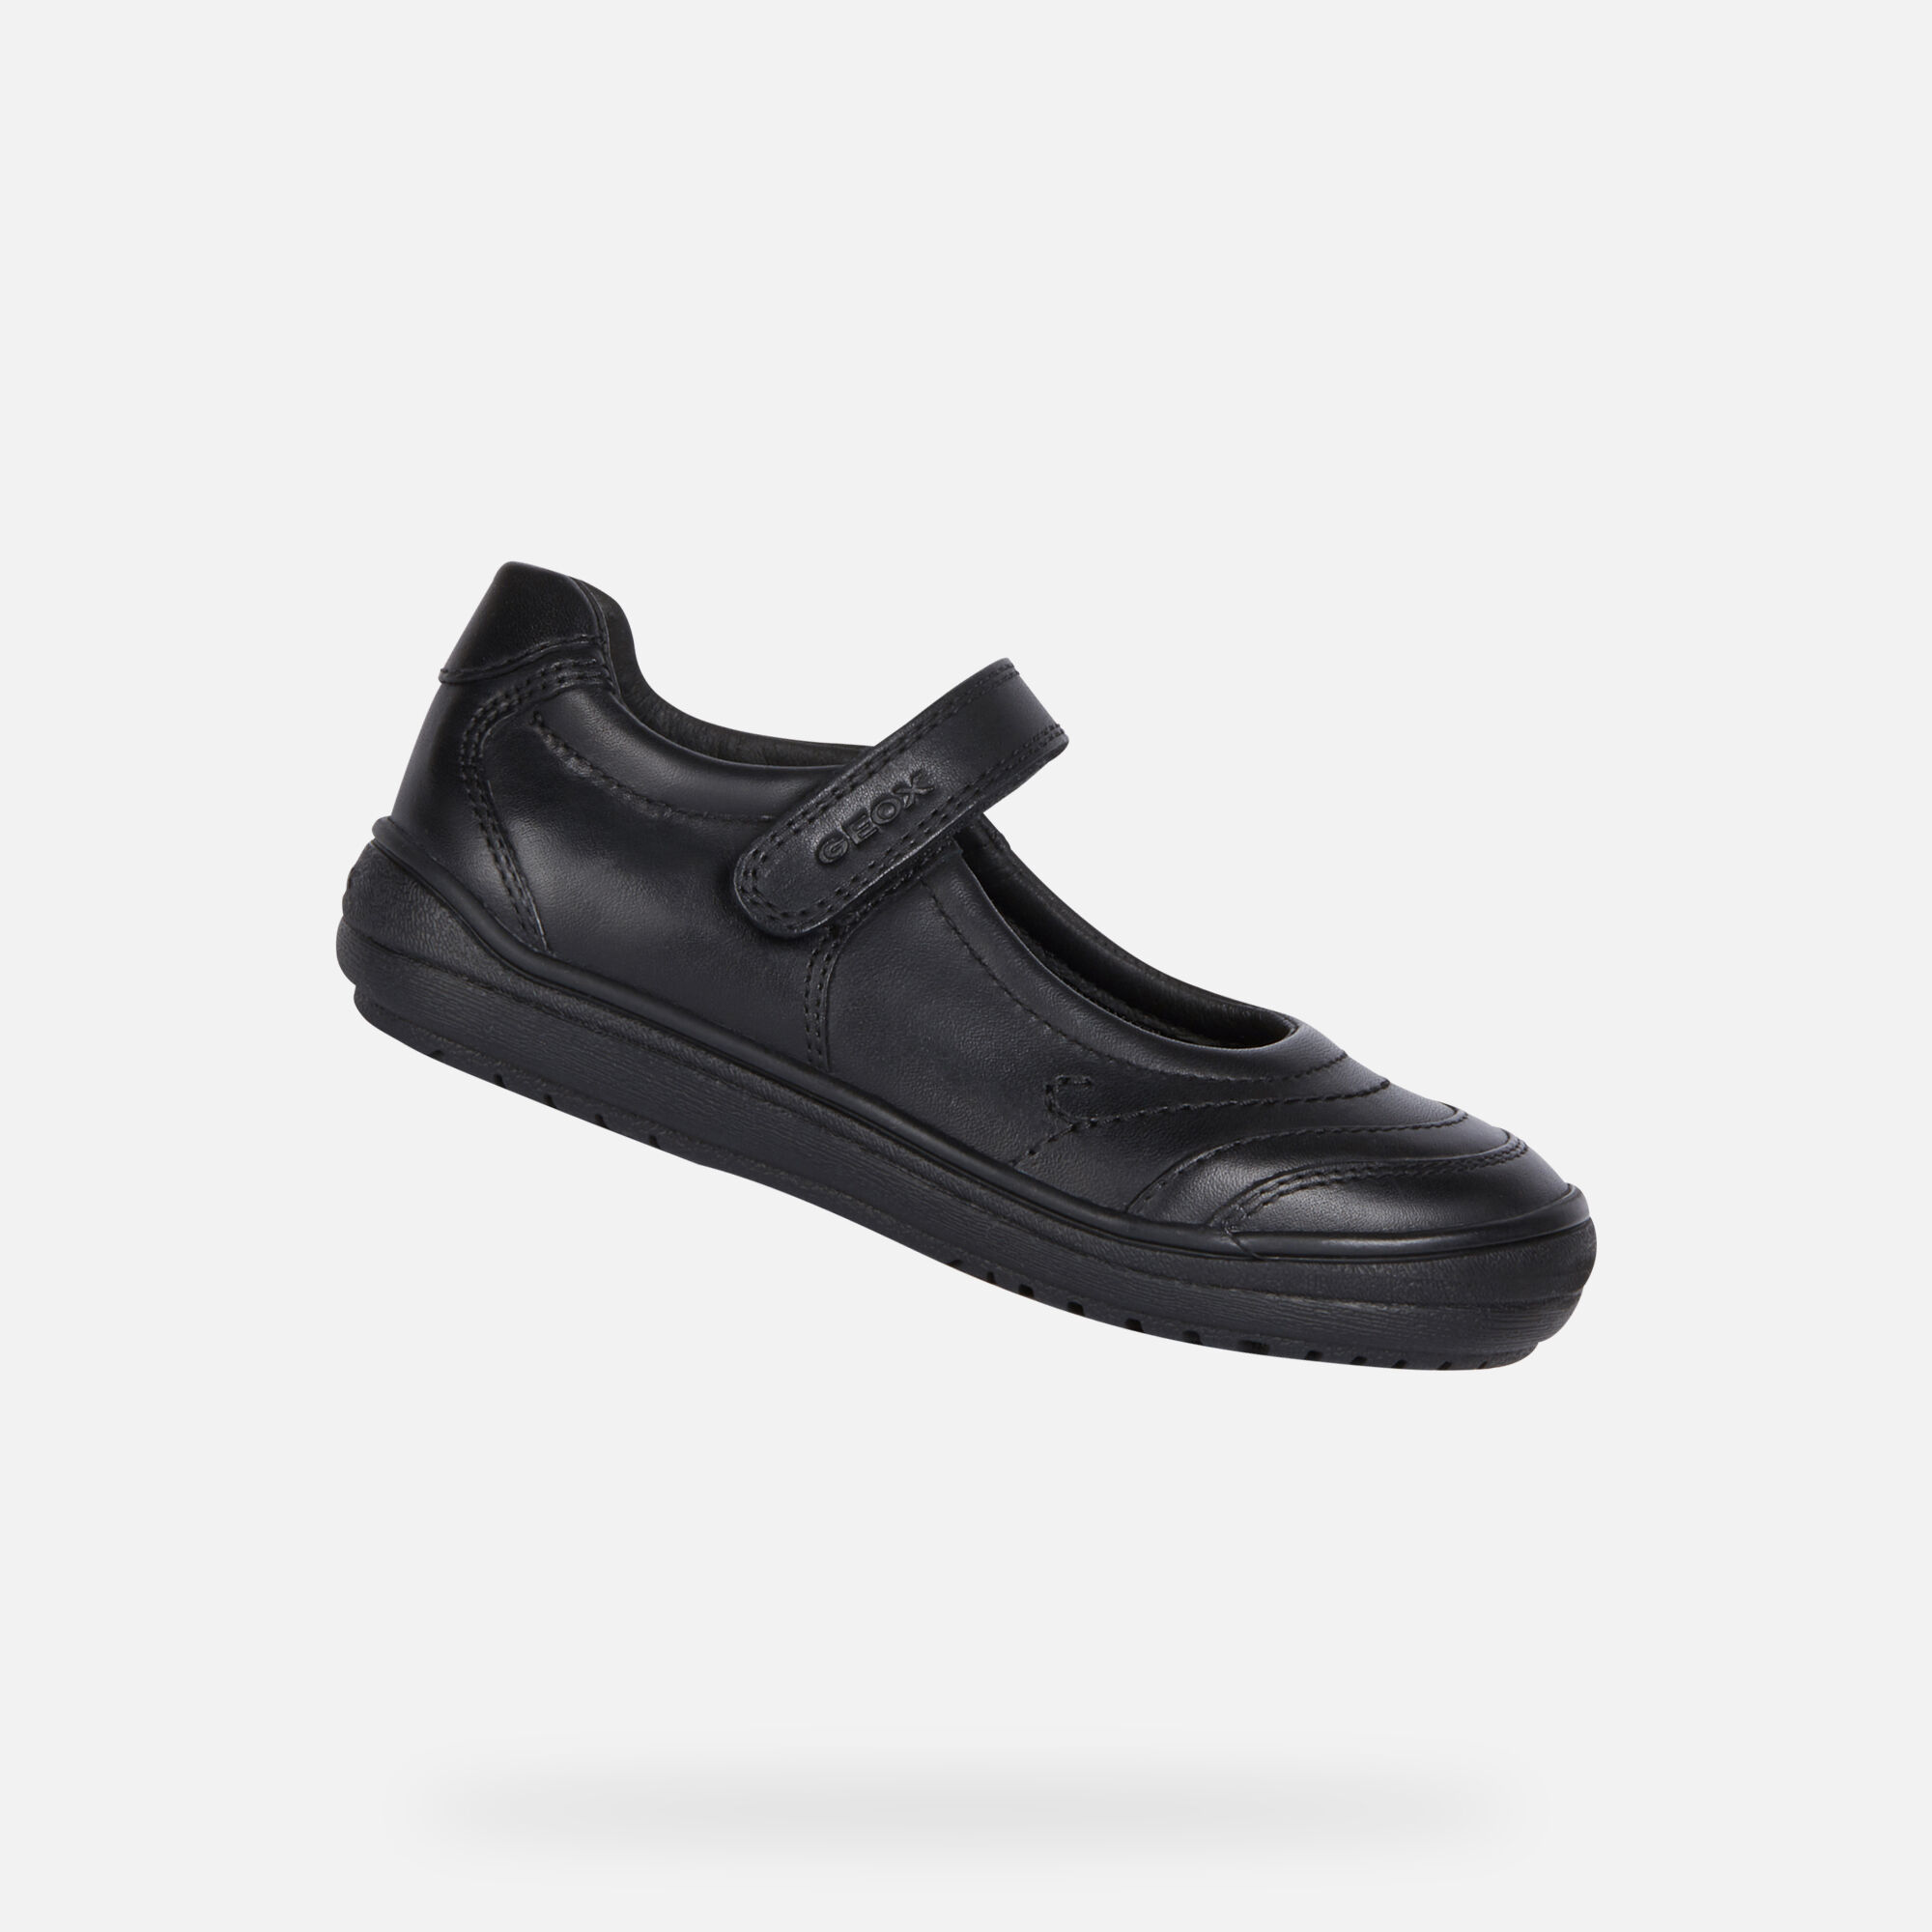 Geox Junior Girl's J HADRIEL Black Ballerinas | Geox FW1920